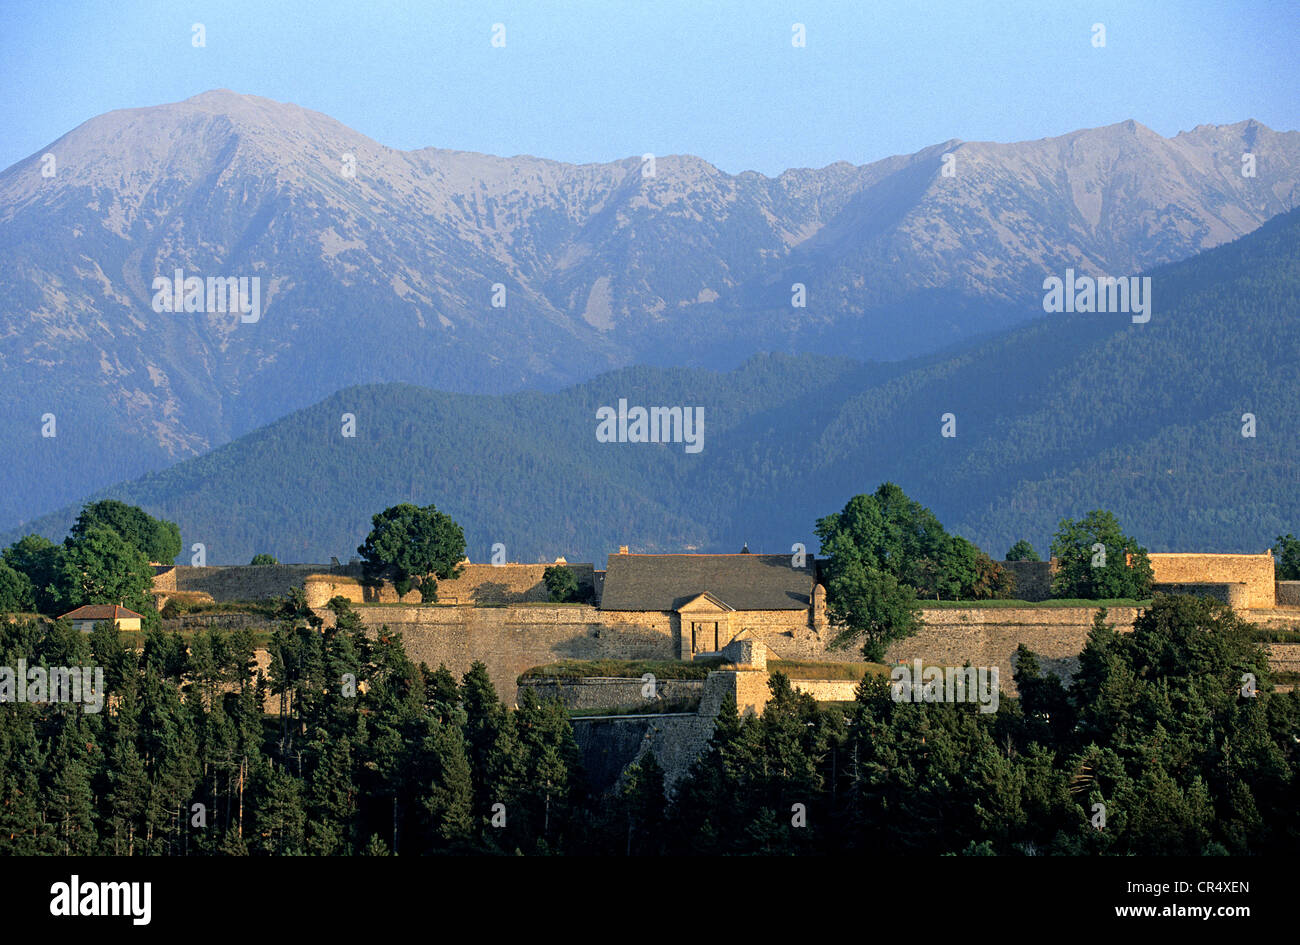 France, Pyrenees Orientales, Mont Louis, fortified town in Capcir, the citadel - Stock Image